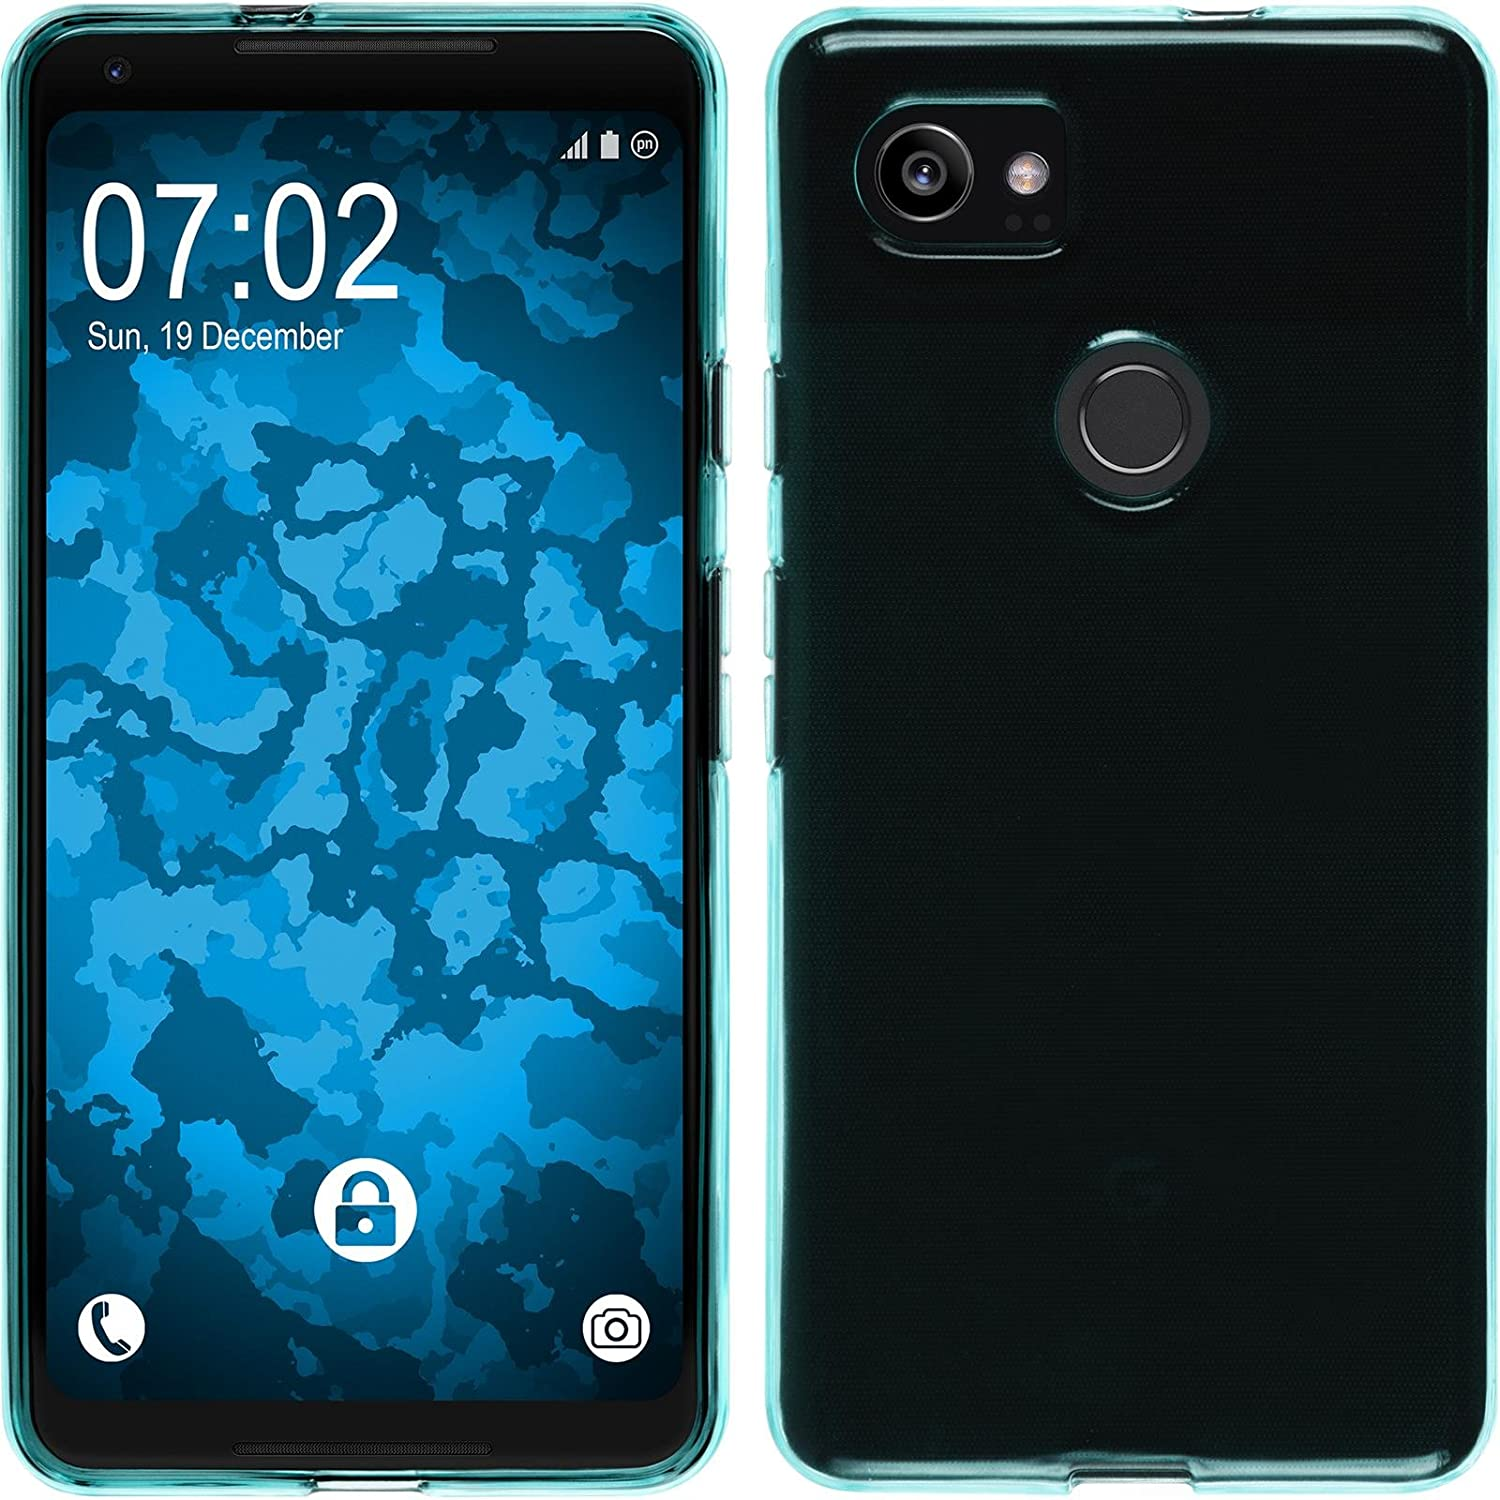 brand new 2ab39 7f81e PhoneNatic Silicone Case for Google Pixel 2 XL Transparent Turquoise -  Cover + Protective foils